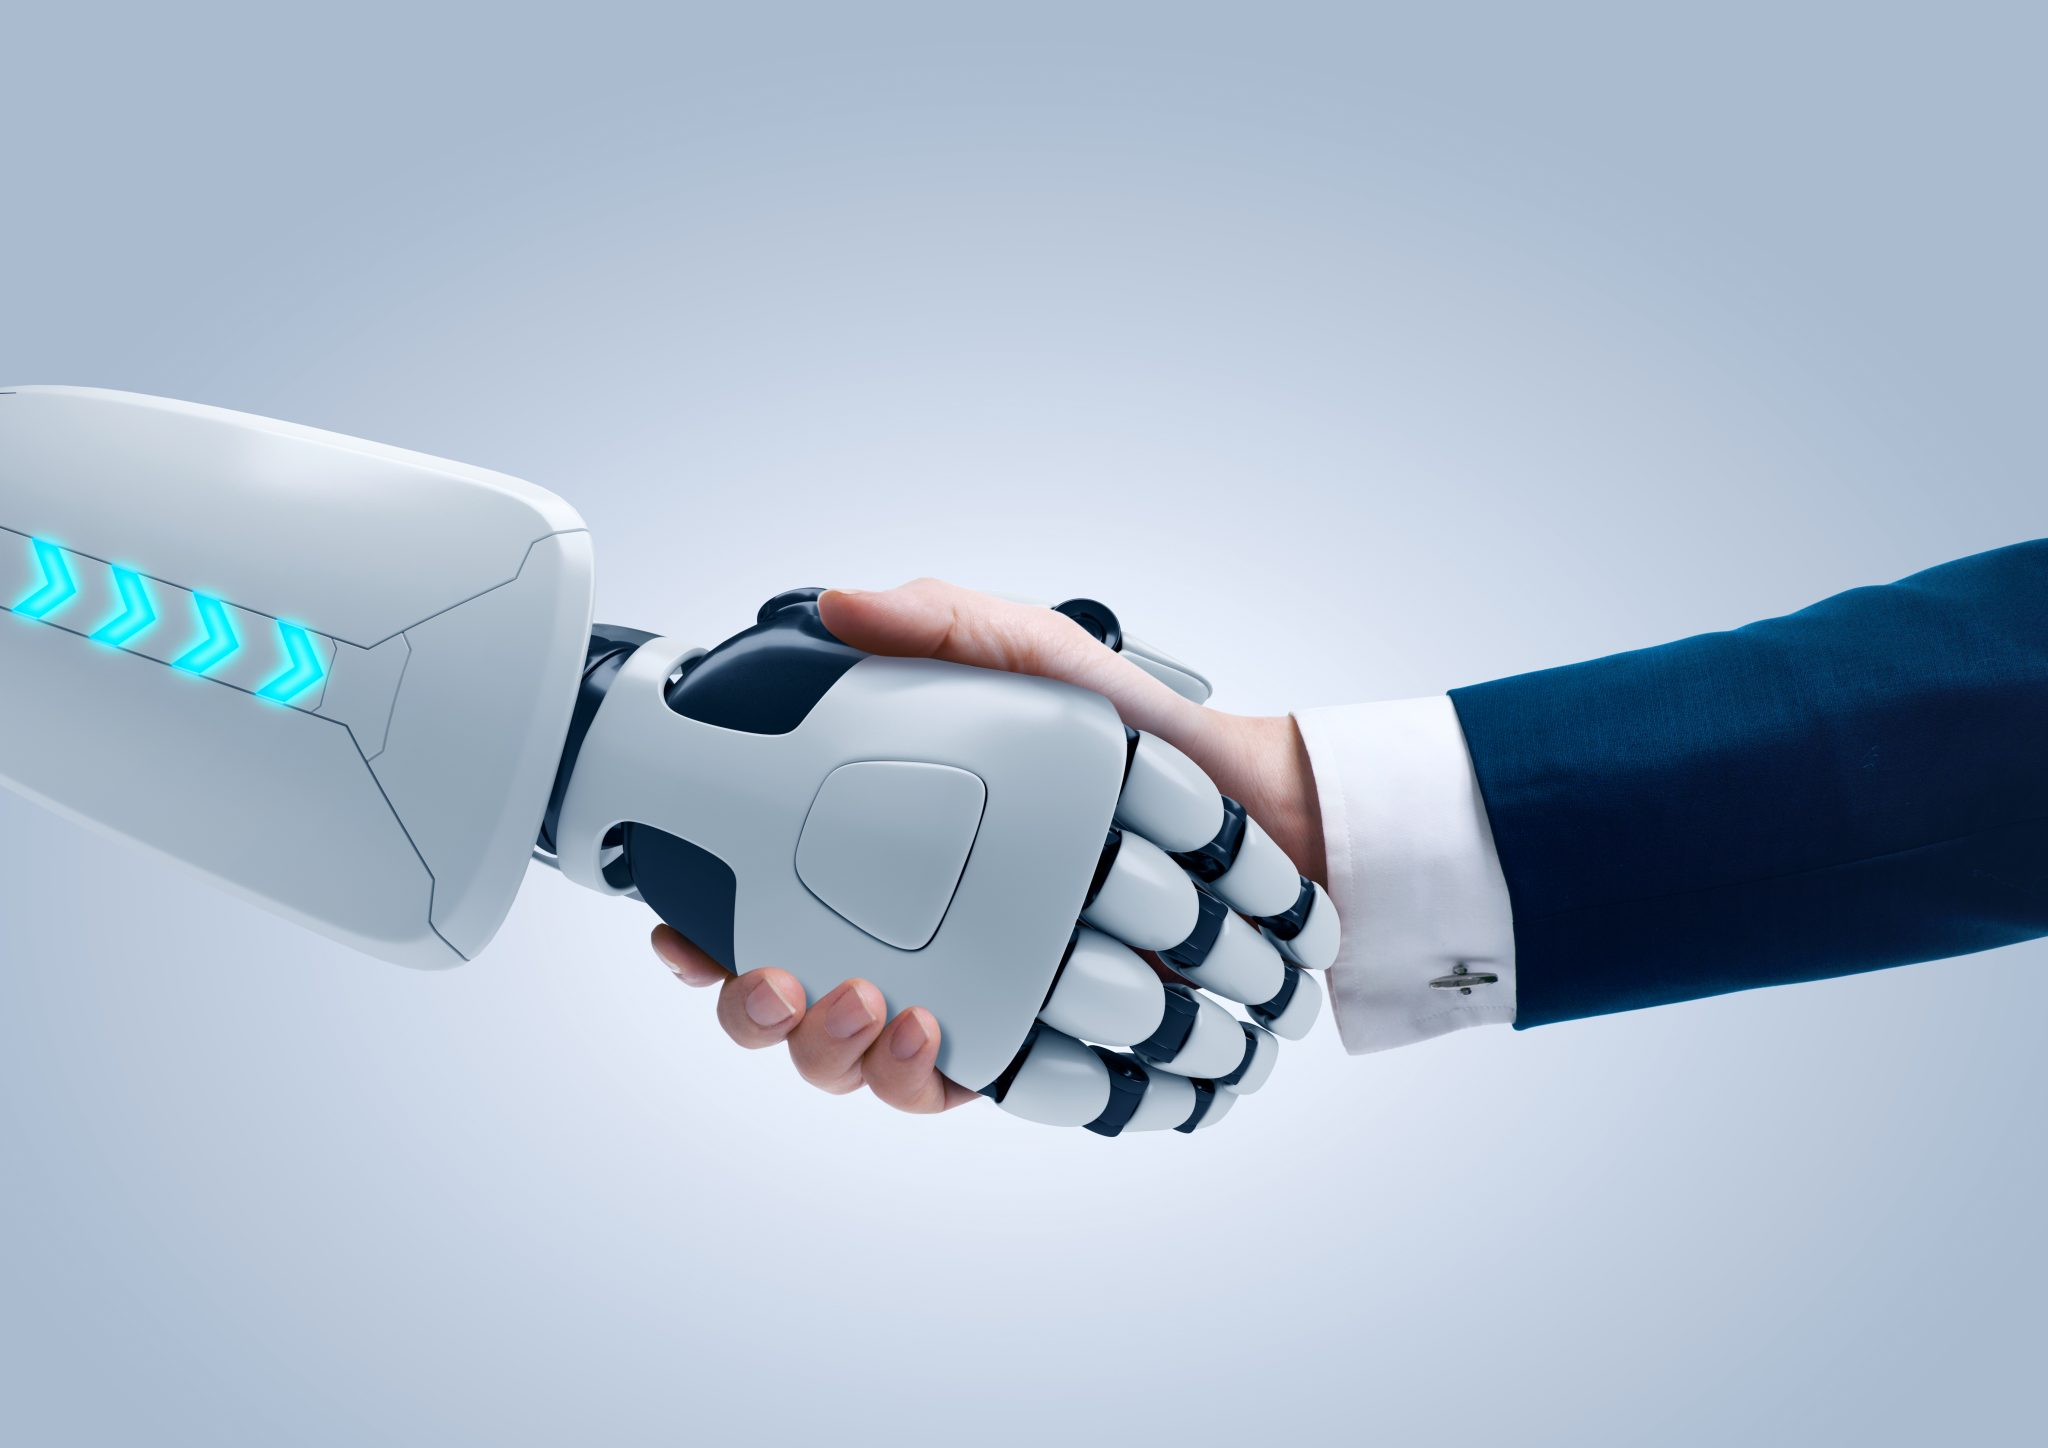 We offer a unique approach to drive value through <br> Robotic Process Automation (RPA) anchored by <br> Automation Anywhere image